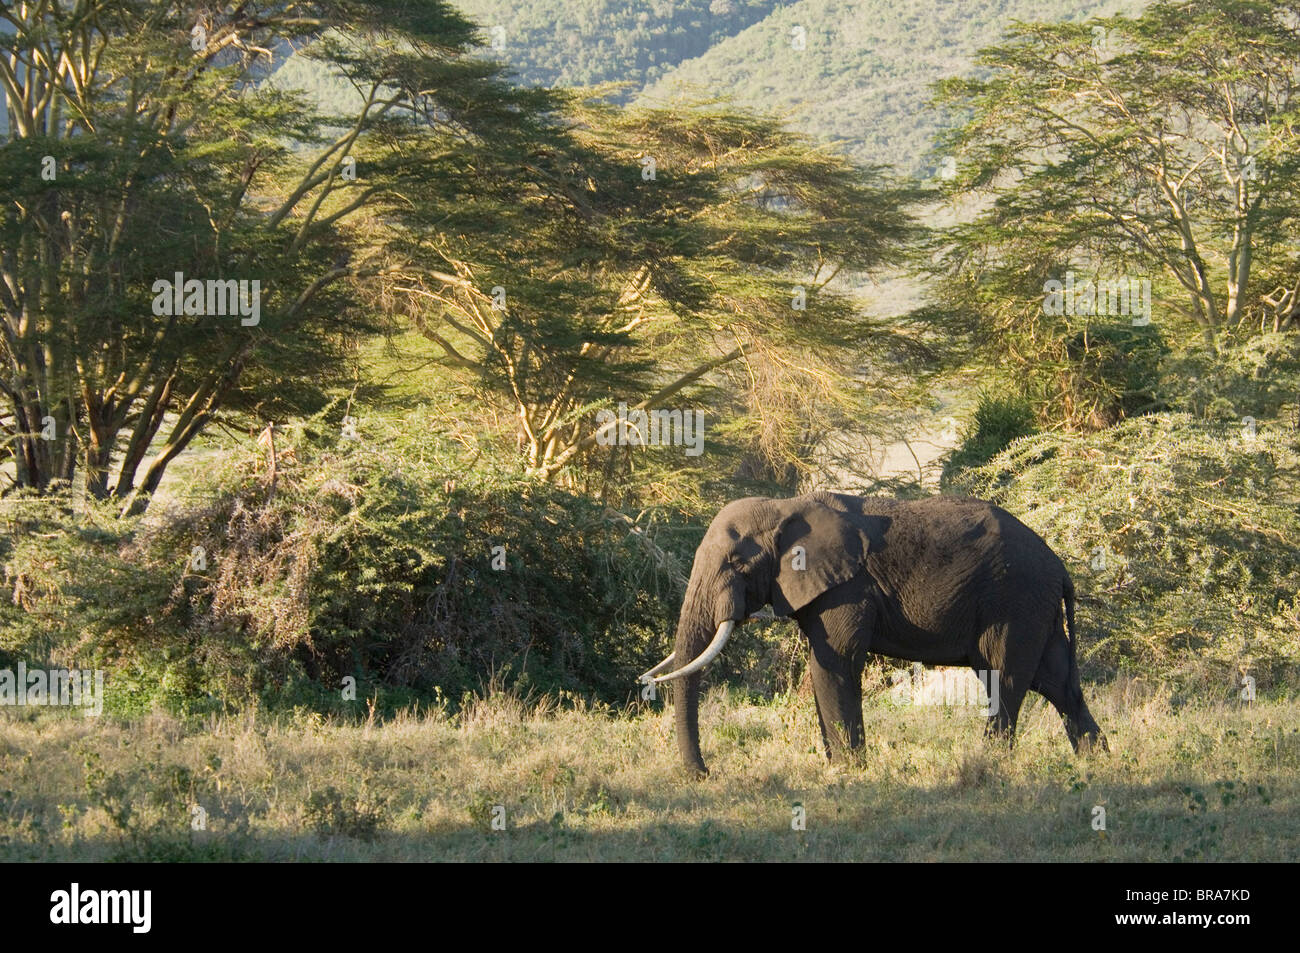 ELEPHANT LAKE MANYARA NATIONAL PARK TANZANIA AFRICA - Stock Image